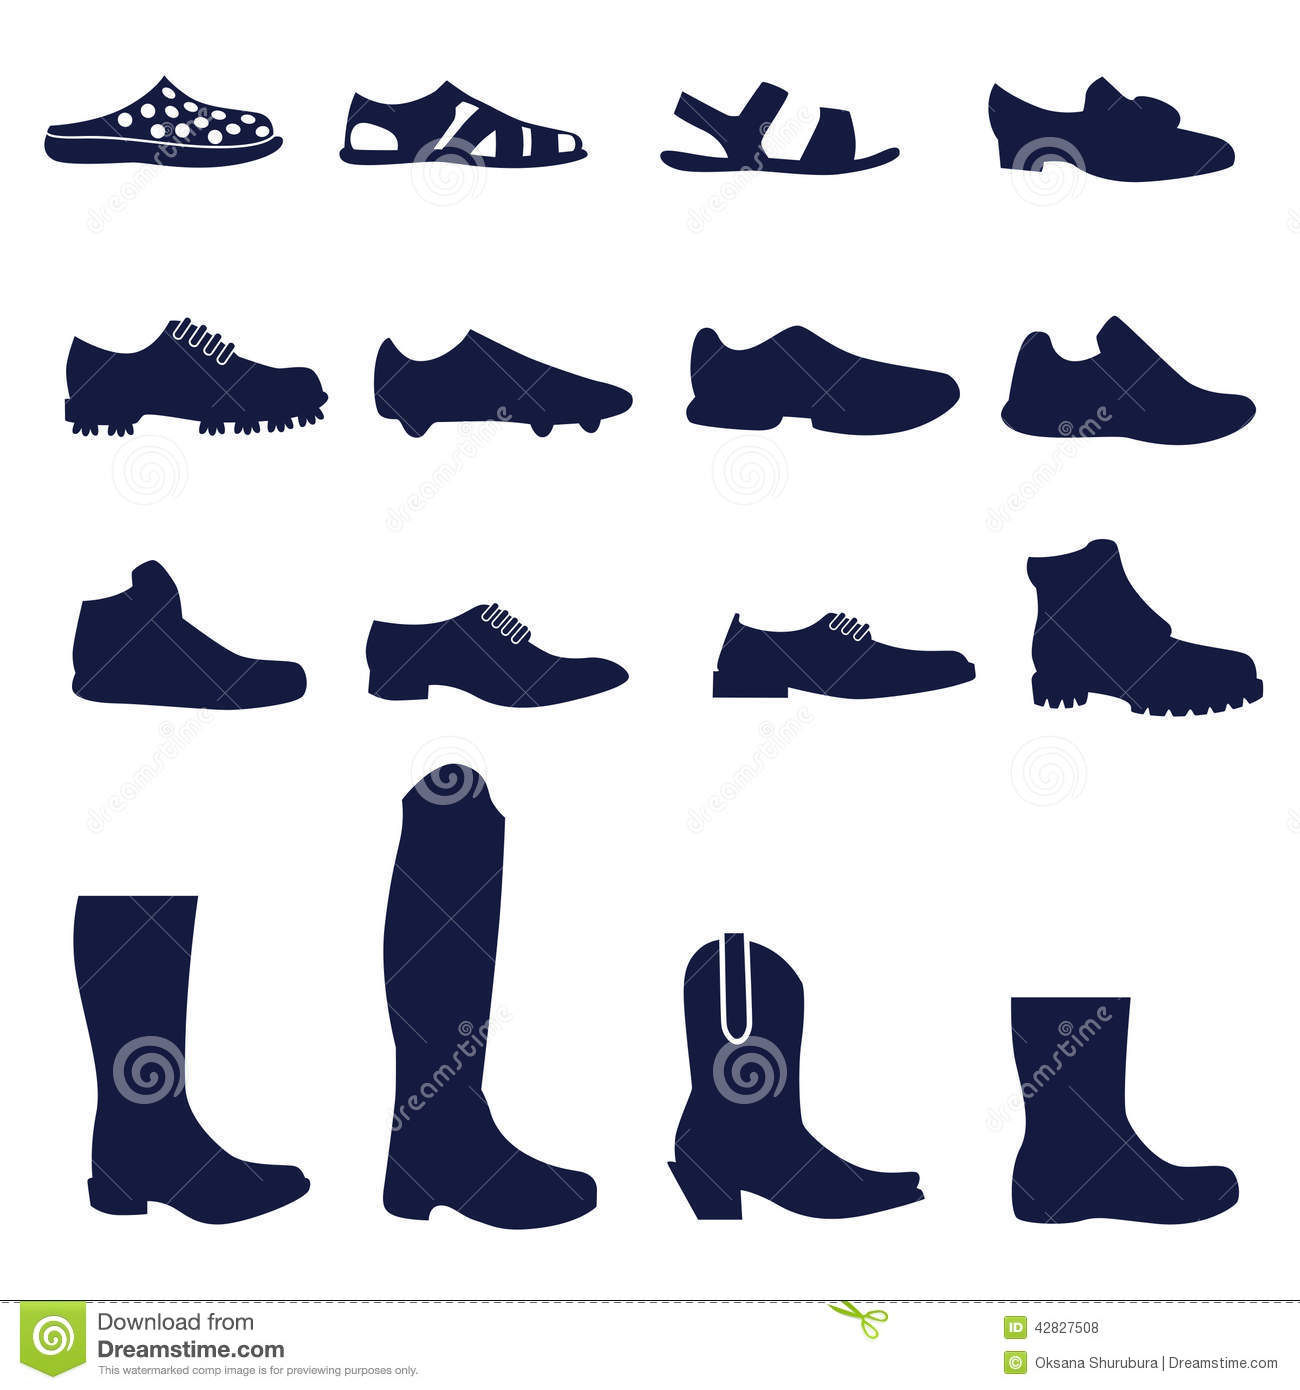 Diff rents types de chaussures des hommes illustration de - Differents types de miroirs ...